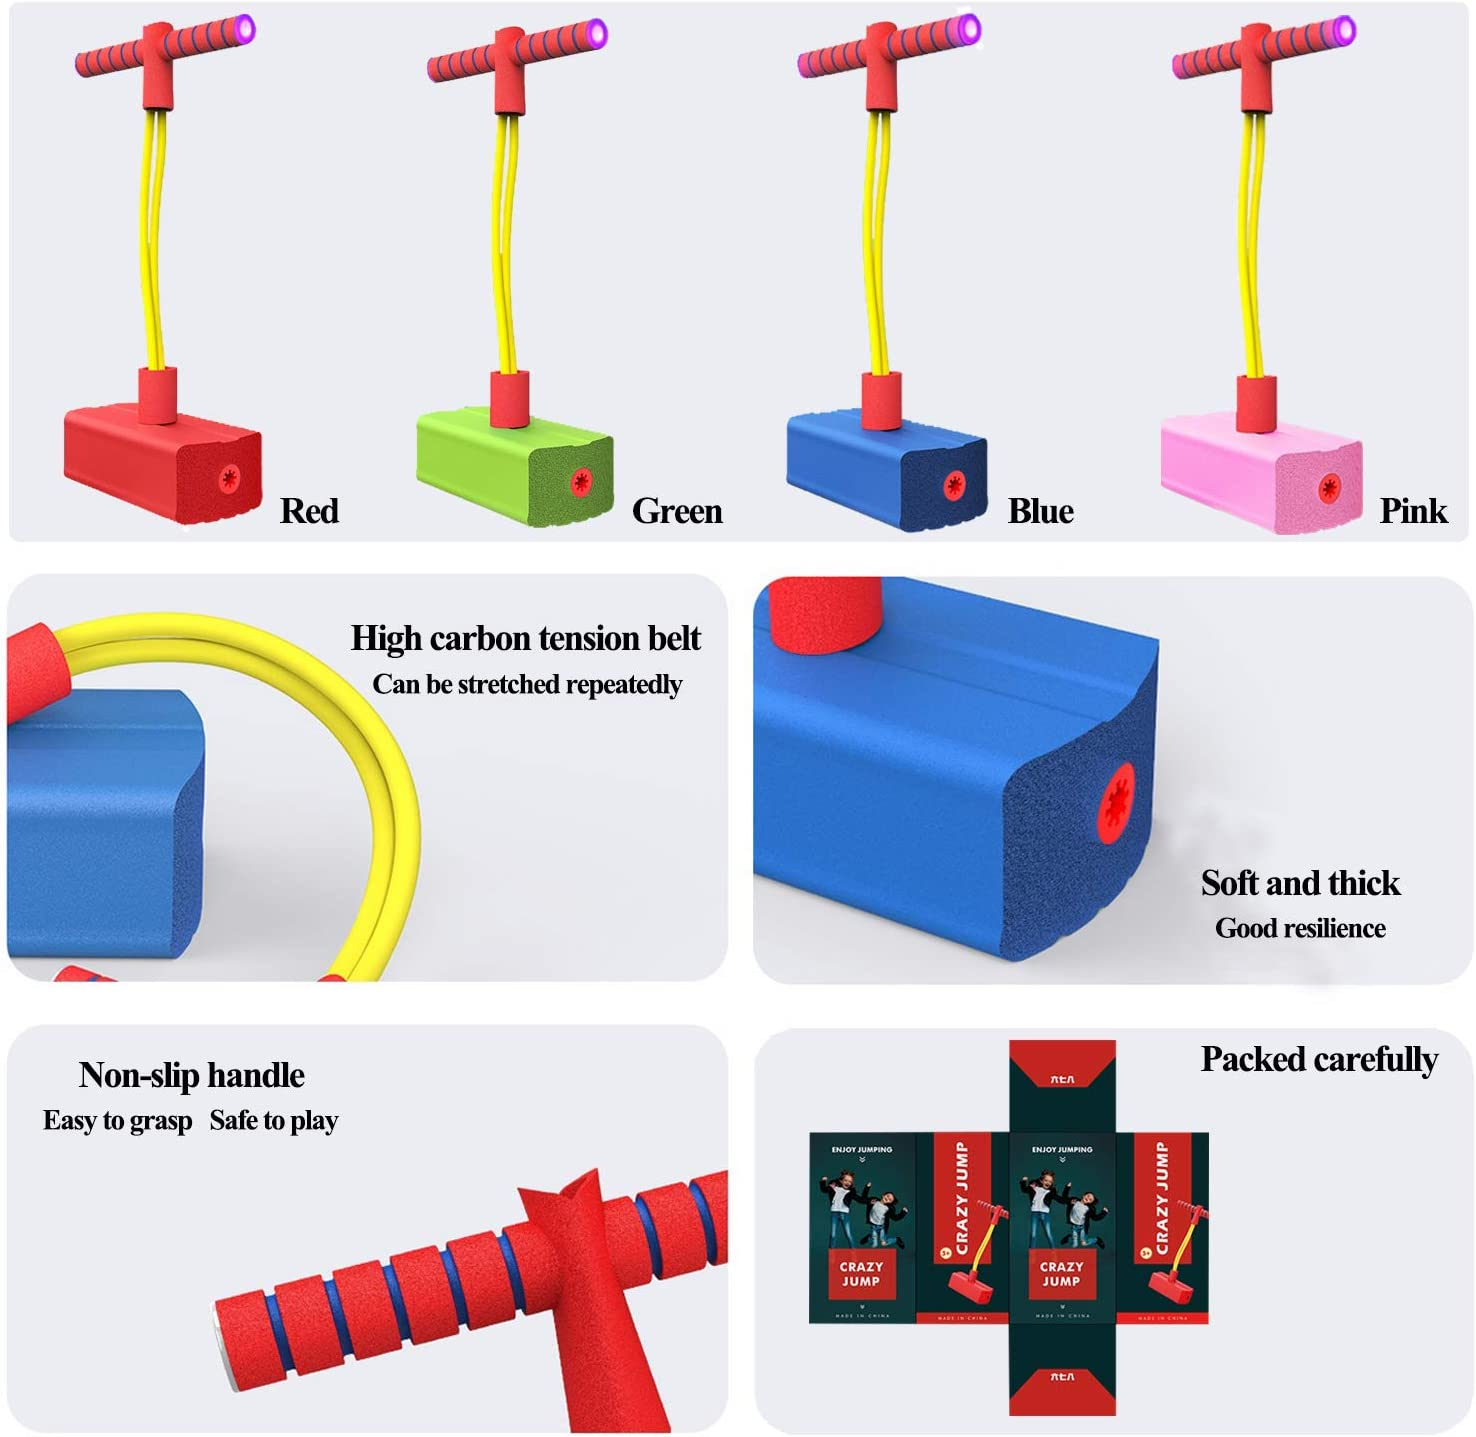 Interesting Sounding and Luminescent Novelty Boys and Girls with Indicator Lights and Sound Toys. EUMENIDES Childrens Indoor and Outdoor Toys Height Balance Training Equipment Jumping Toys red